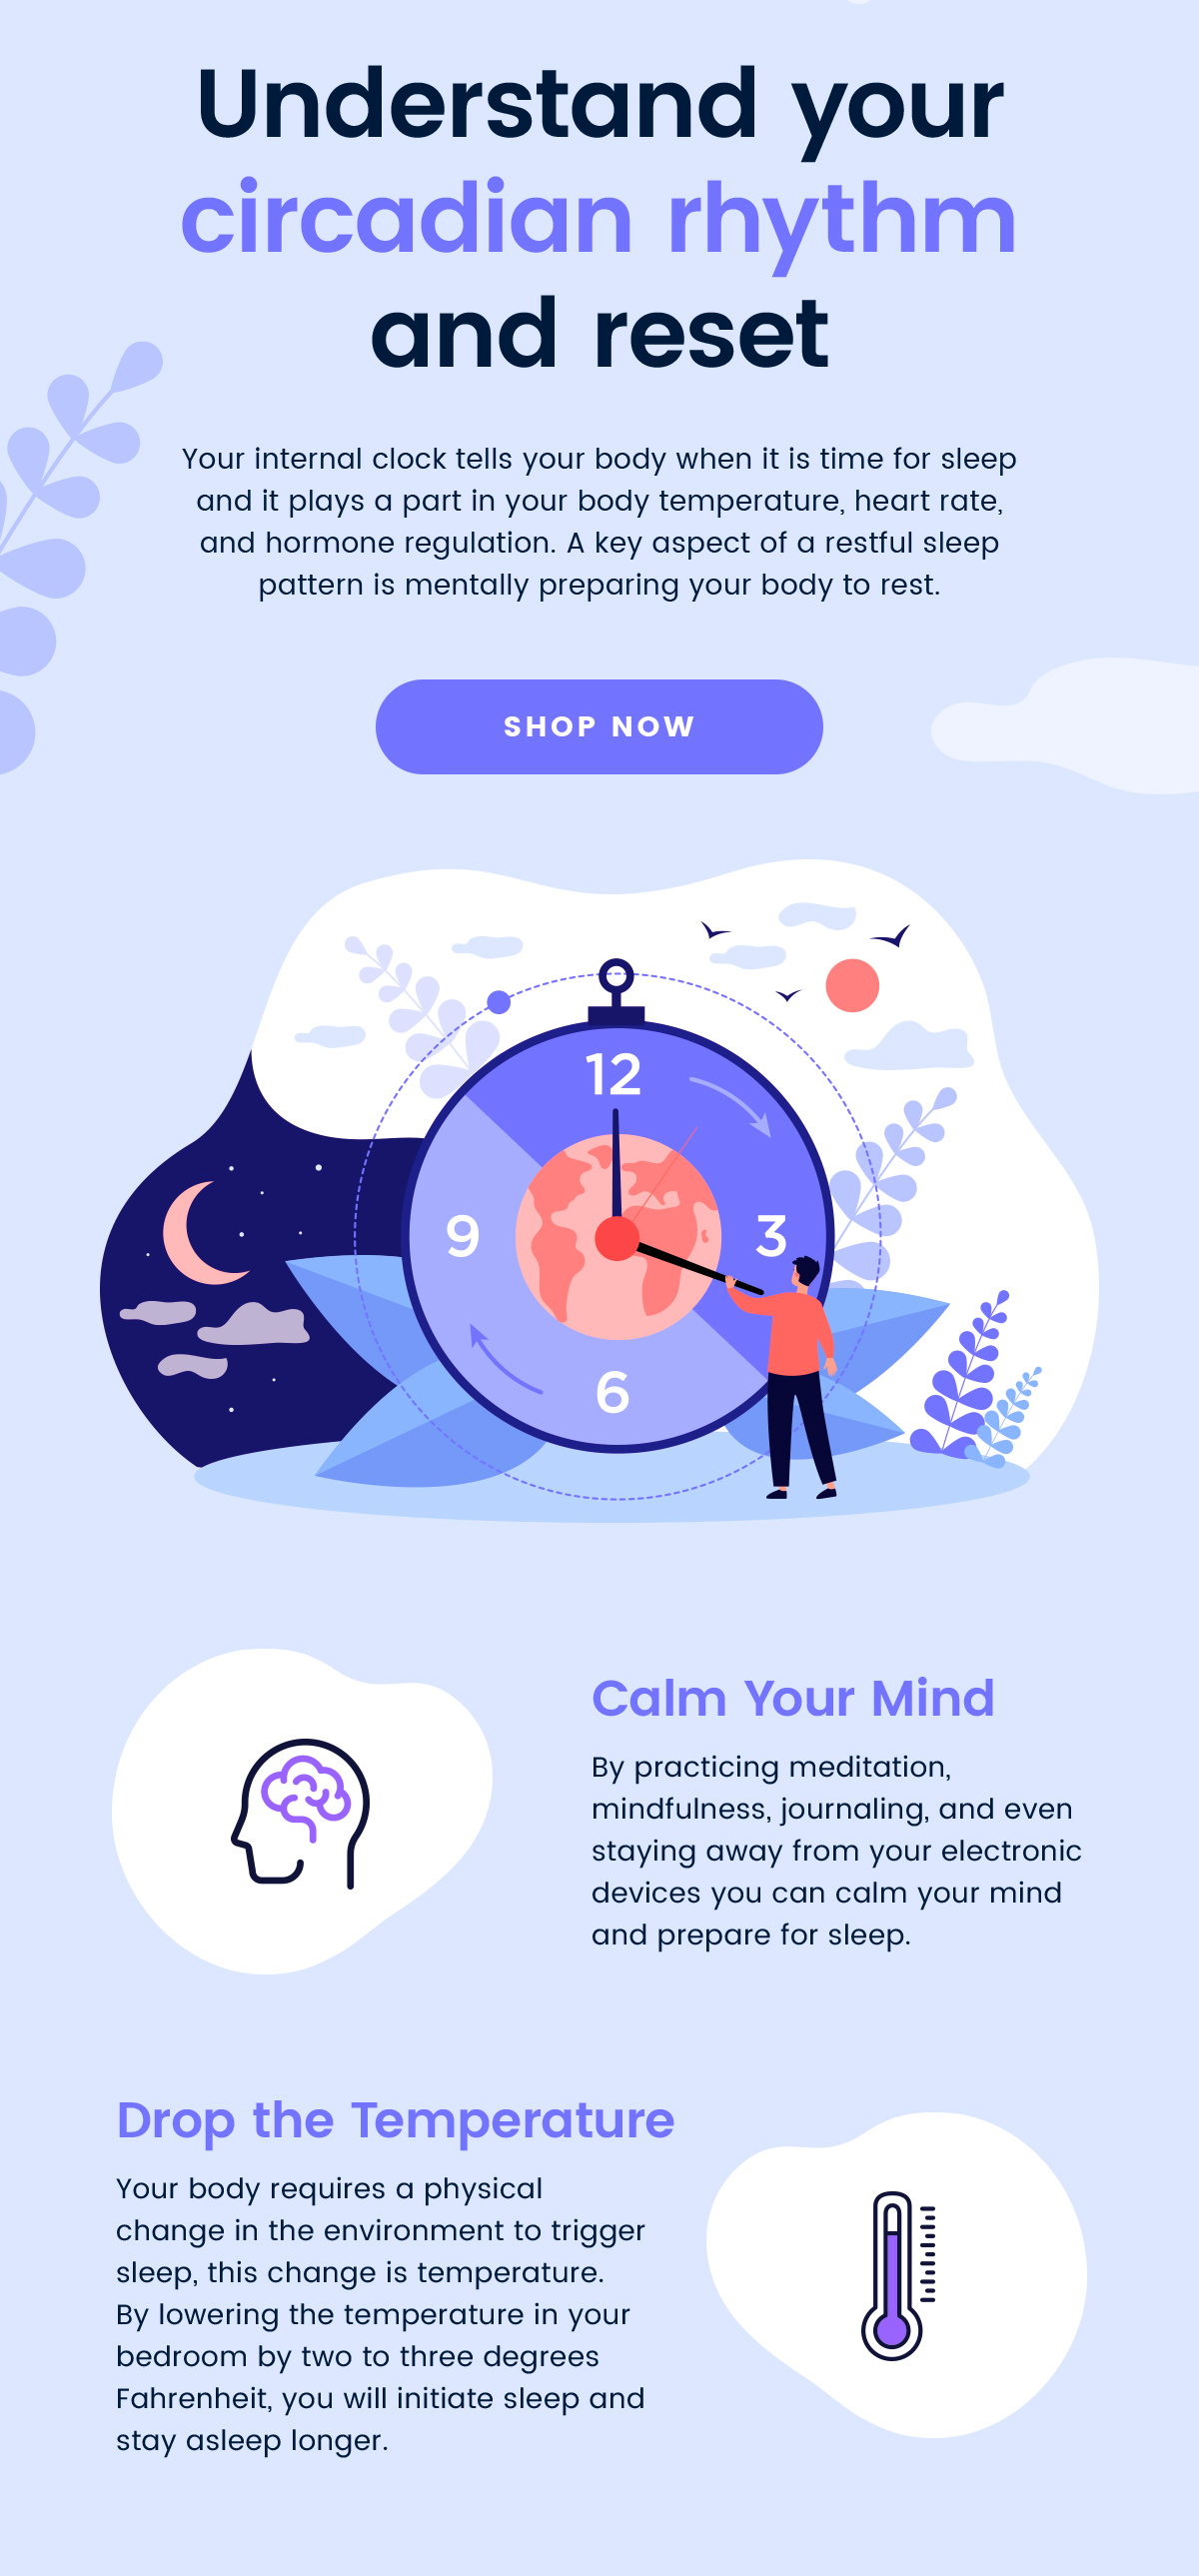 Understand your circadian rhythm and reset | Calm Your Mind | Drop the Temperature | SHOP NOW